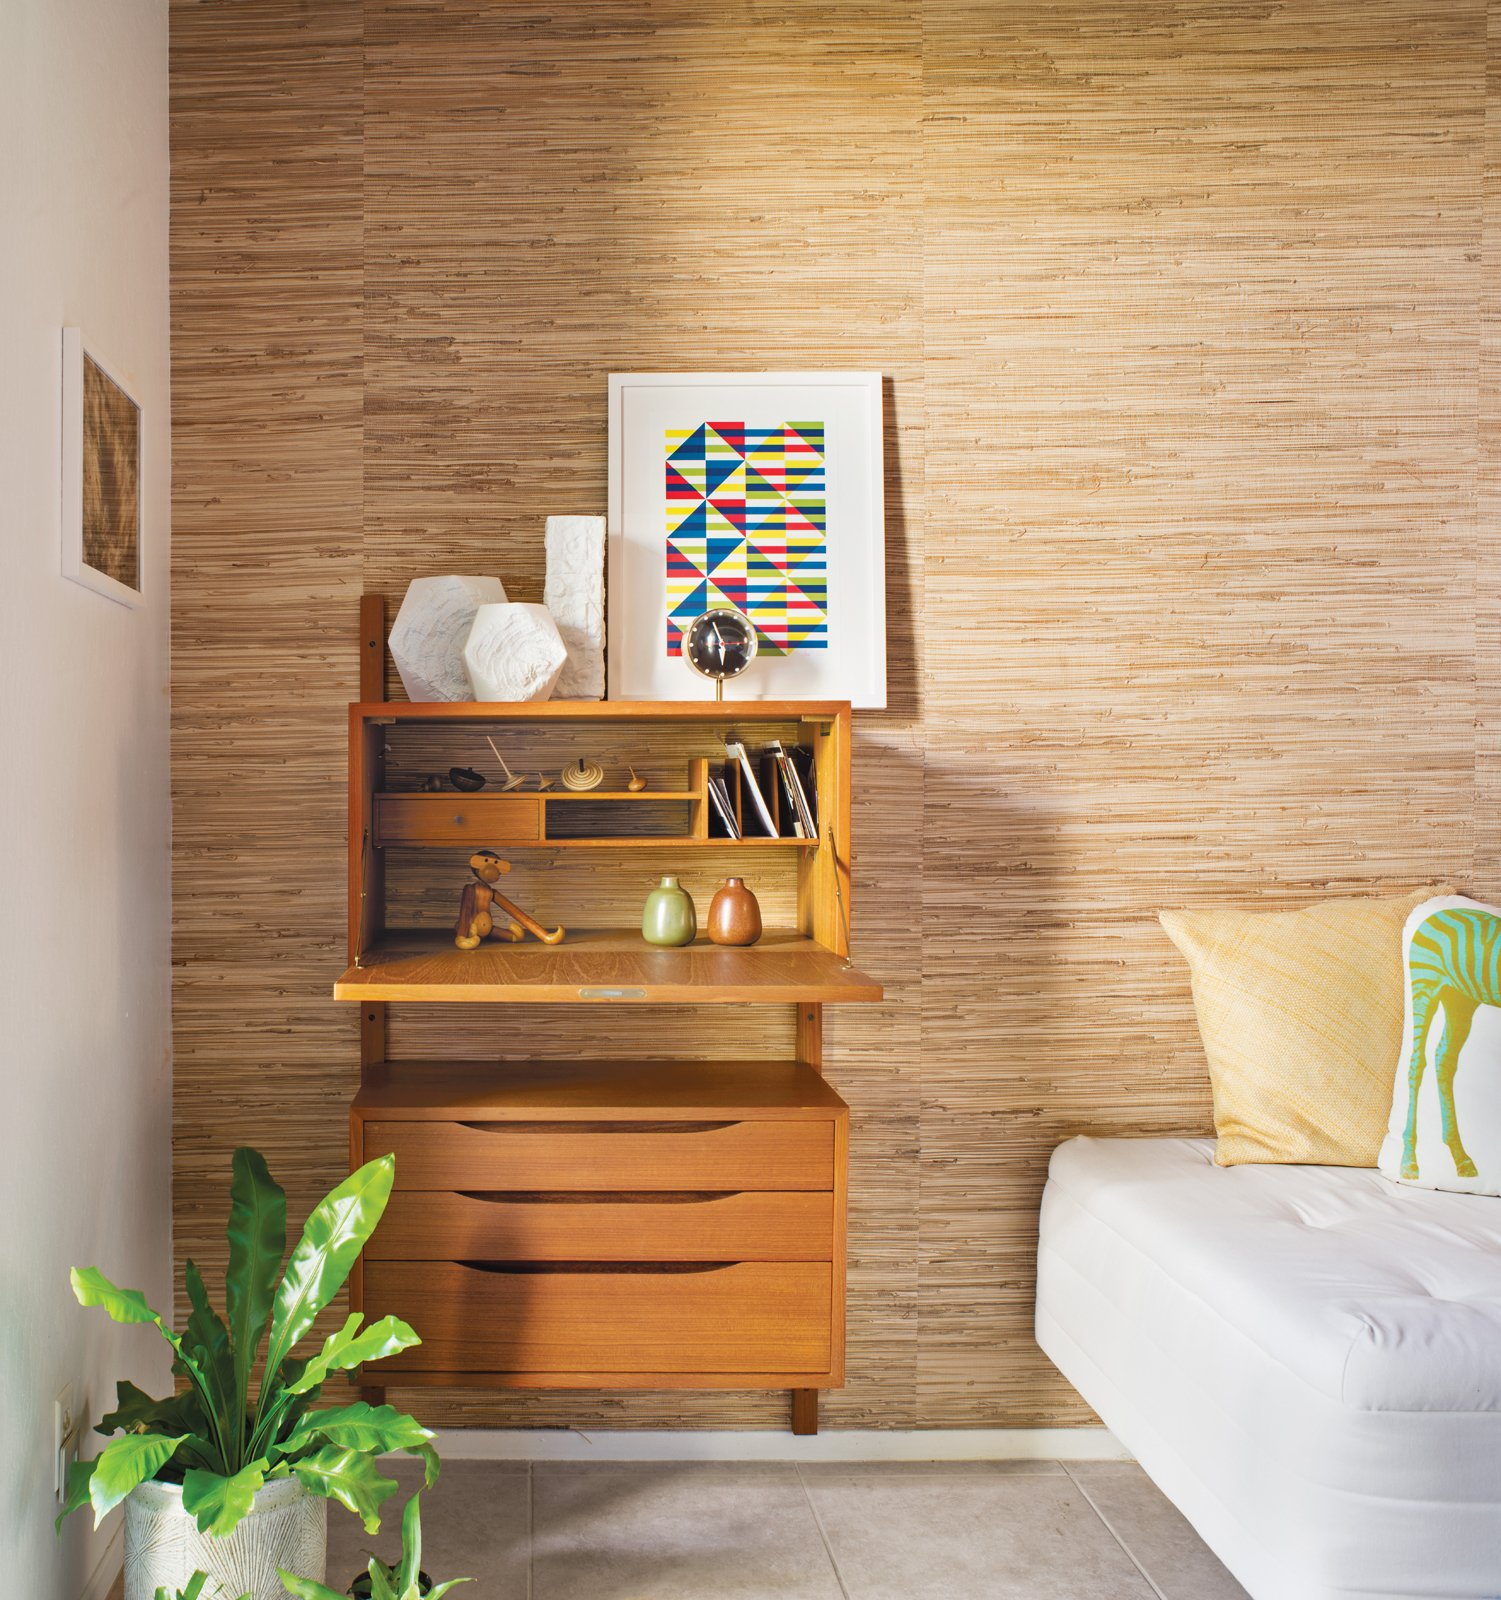 """A Good Reed  The most changed area of the home is the small guest room–office, where Neely, who works from home, removed the closet doors and added a grass-cloth wall treatment to distinguish it from the rest of the house's decor. """"Many of the Eichlers originally had grass cloth as a covering on the sliding closet doors,"""" he says. """"The guest room–office is the only other room that can be seen from the public areas across the atrium, and I wanted this wall to add visual interest."""" Tagged: Bedroom, Shelves, and Bed.  Bedrooms by Dwell from Modern Furniture Fit for a Classic Eichler"""